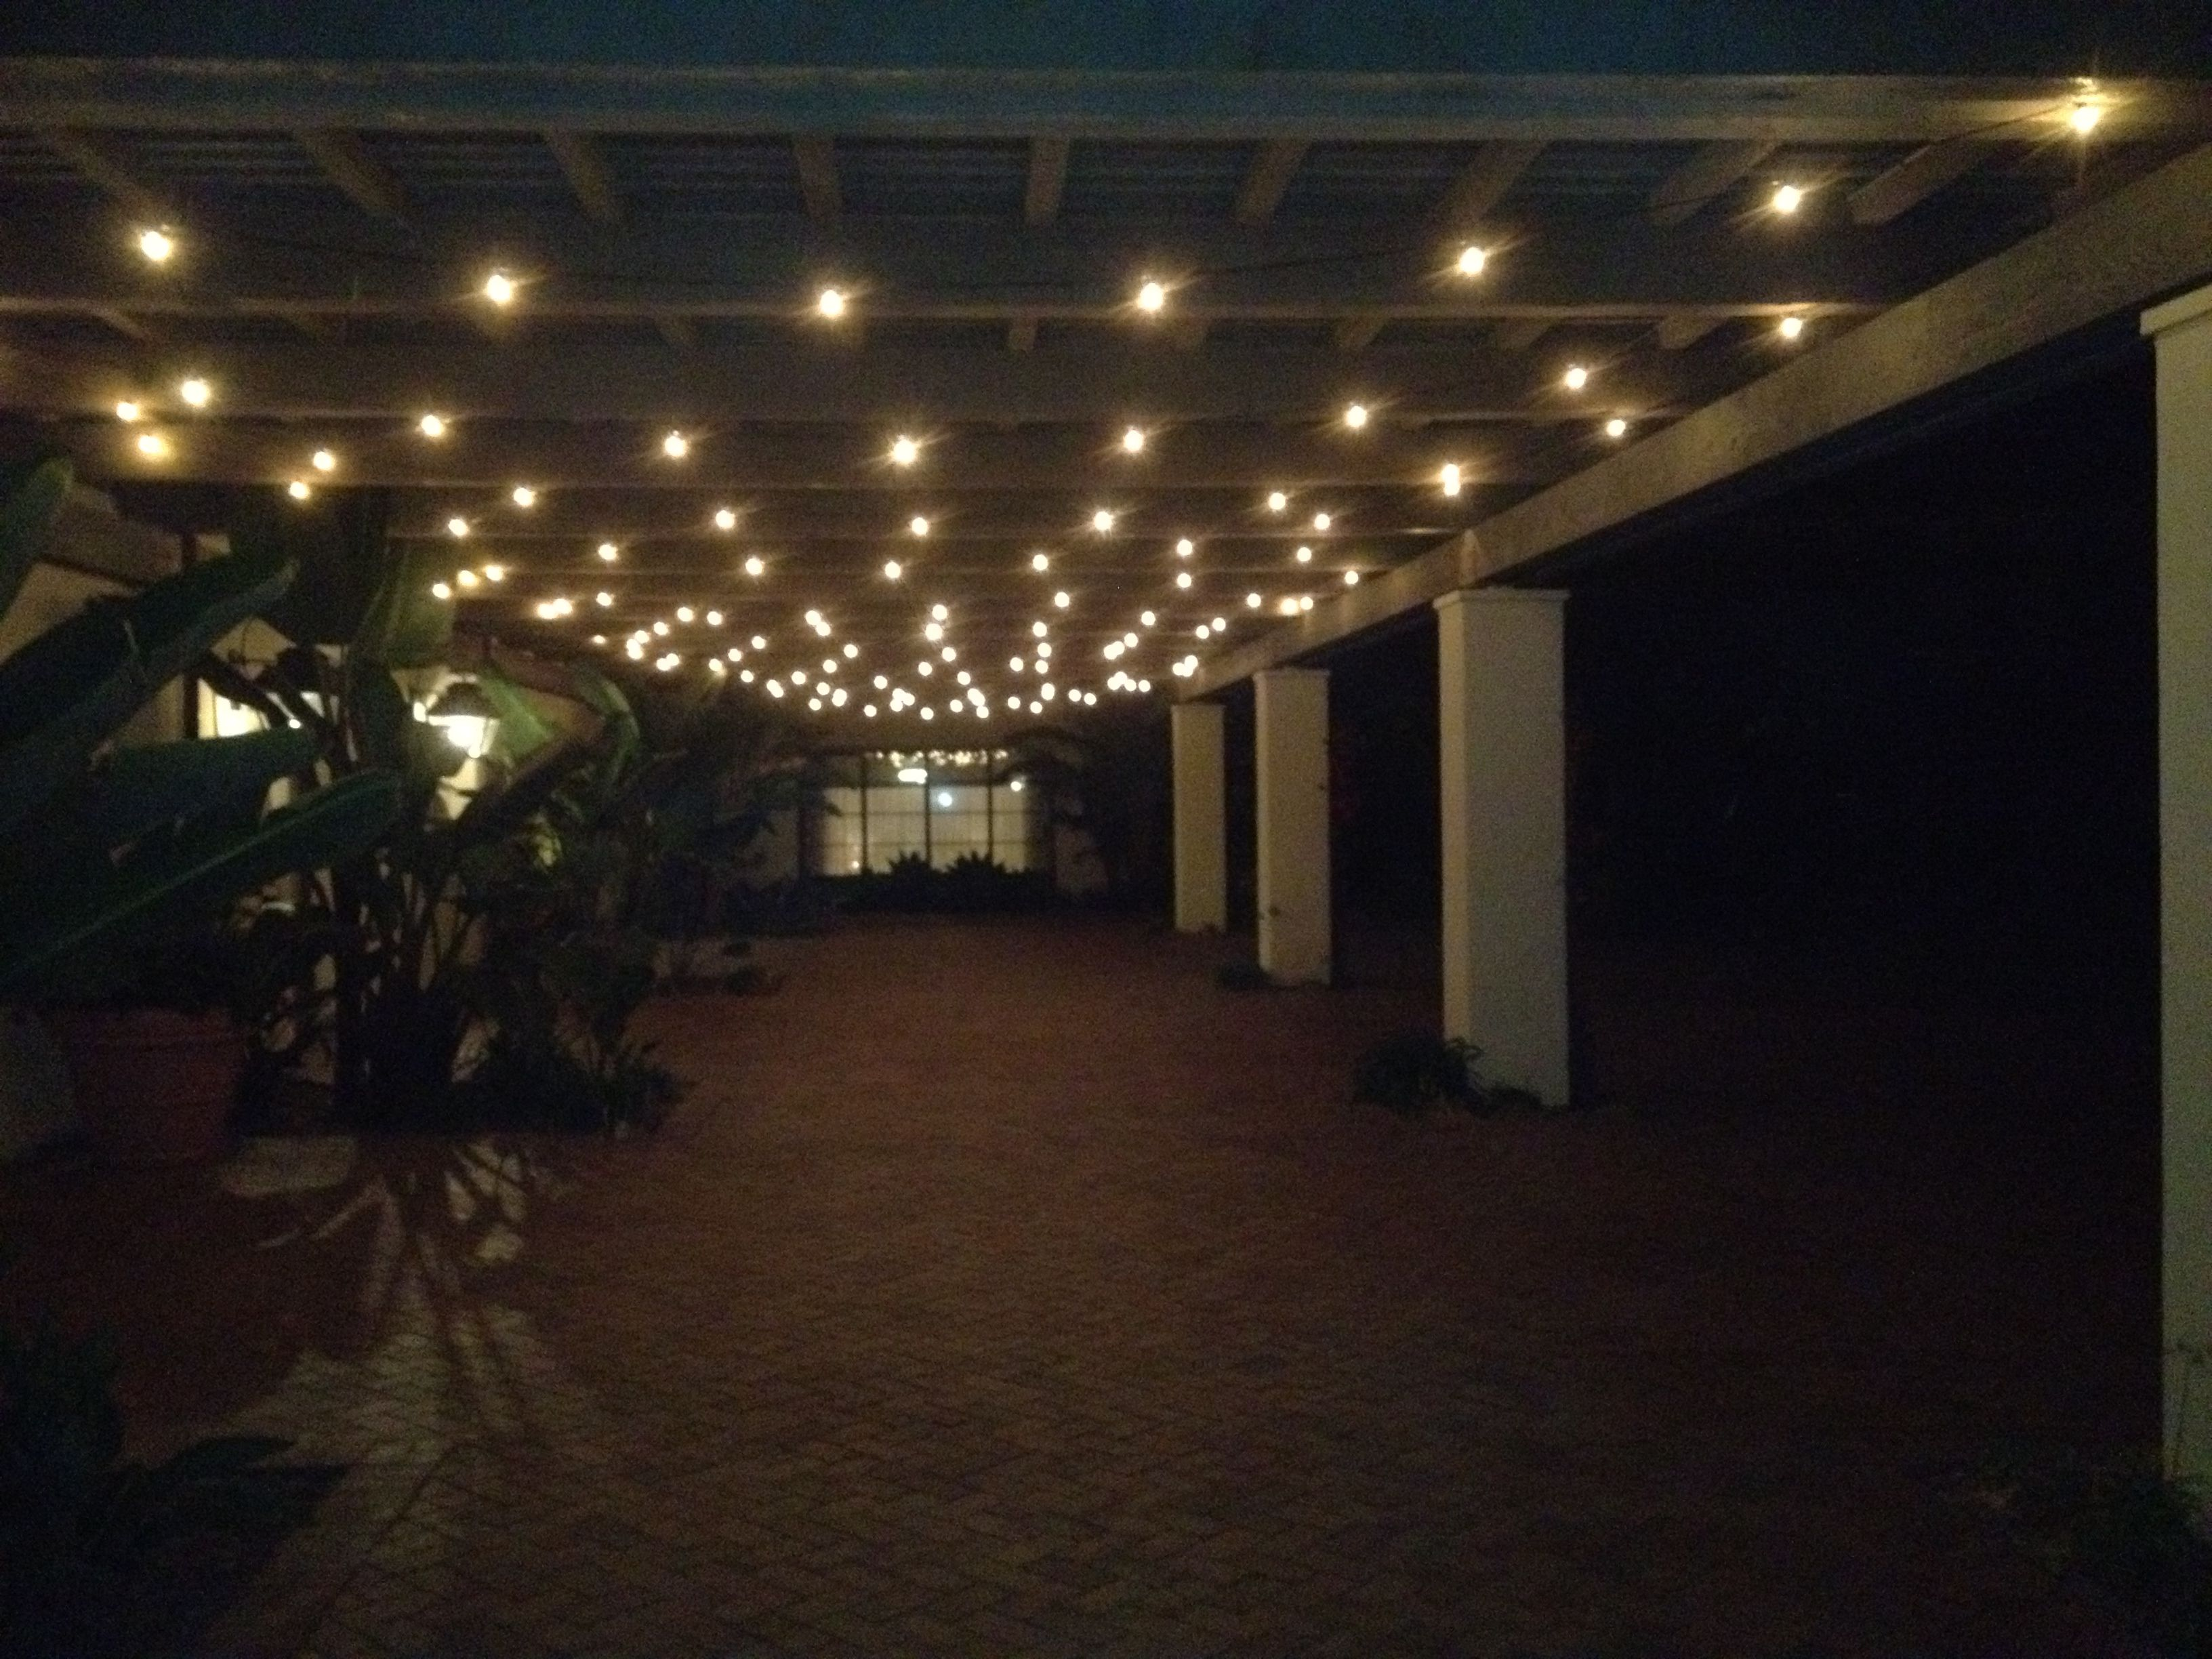 Pation lights google search patio hanging patio - Indoor string light decoration ideas ...